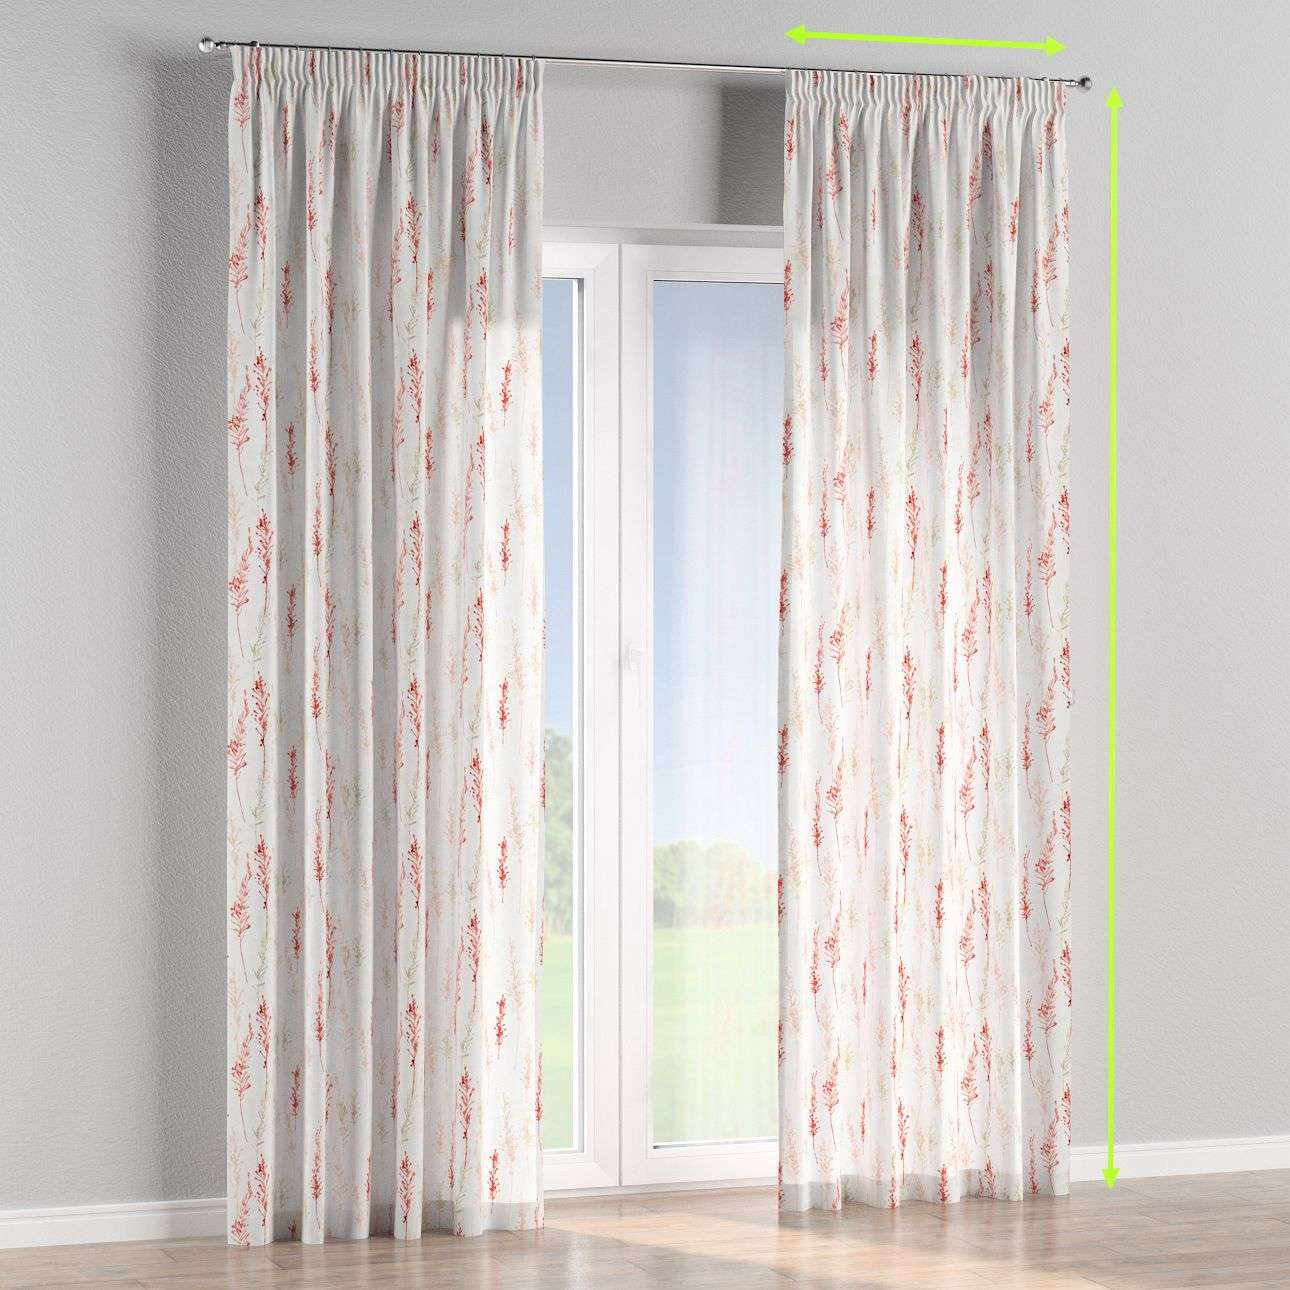 Pencil pleat lined curtains in collection Acapulco, fabric: 141-37